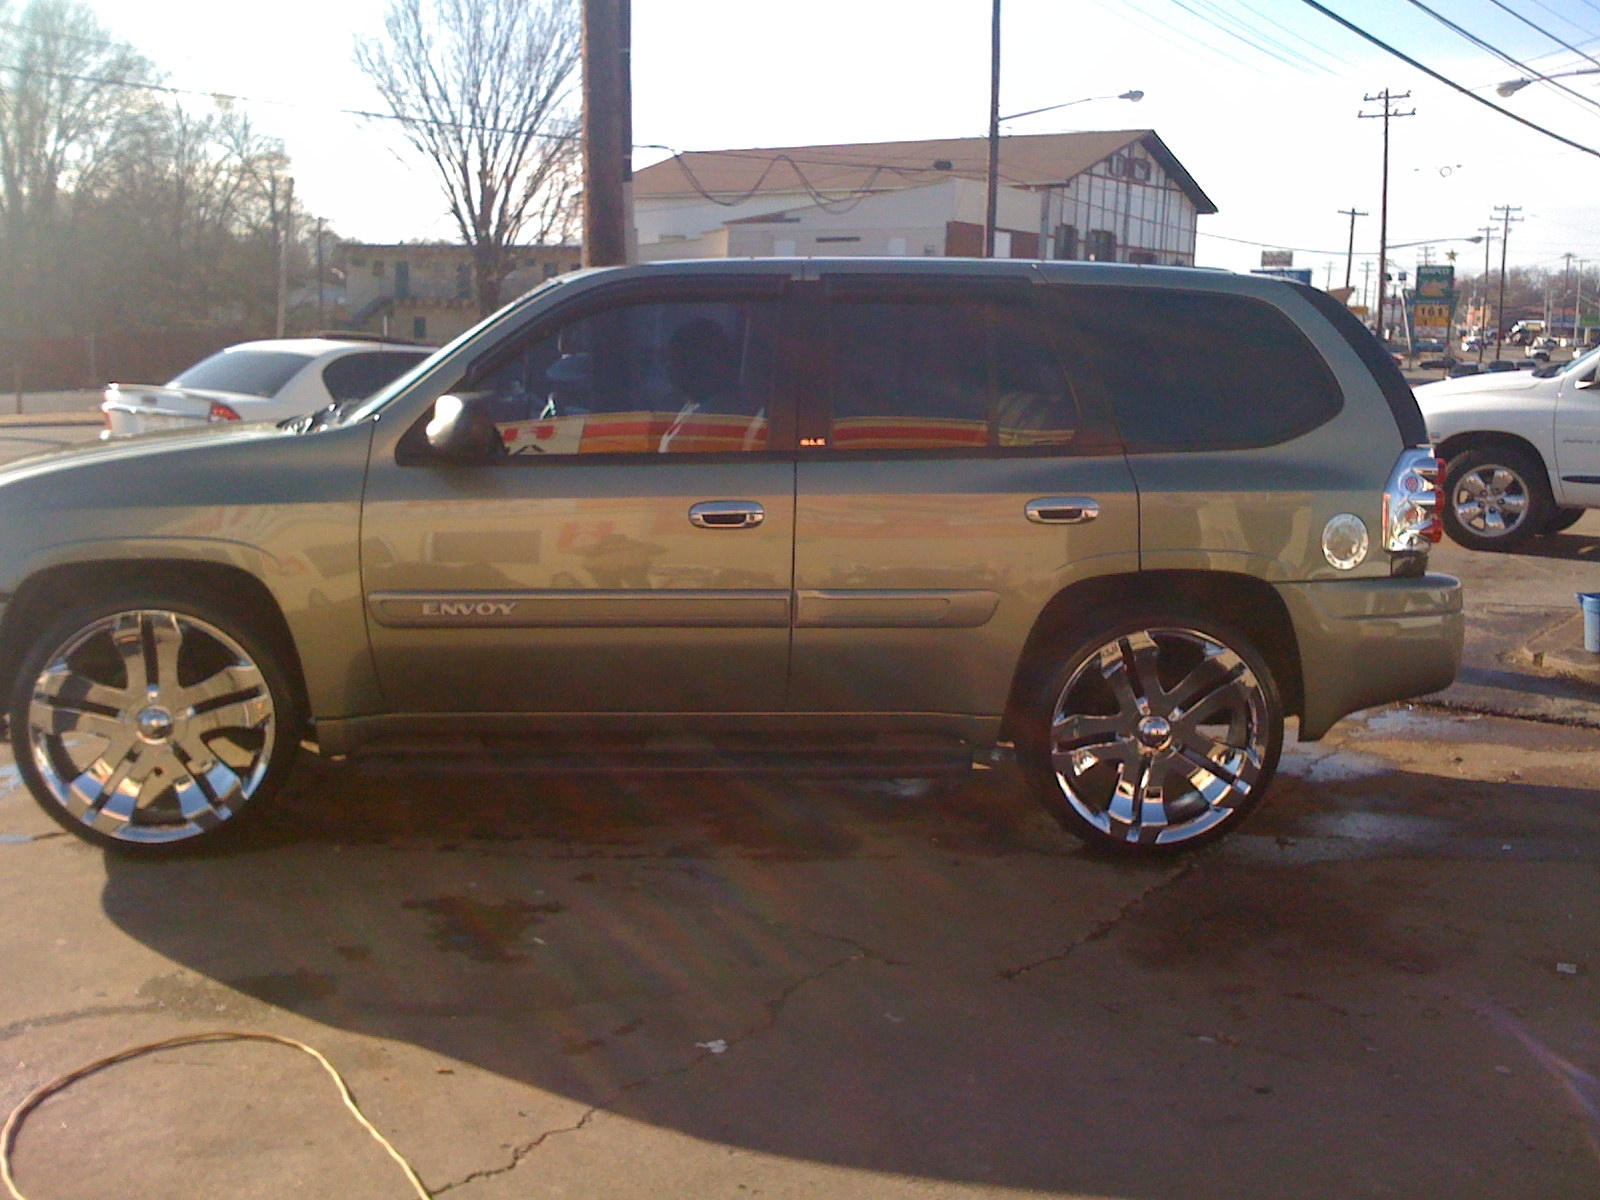 Volkswagen Of Clarksville >> blacka1 2003 GMC Envoy Specs, Photos, Modification Info at ...